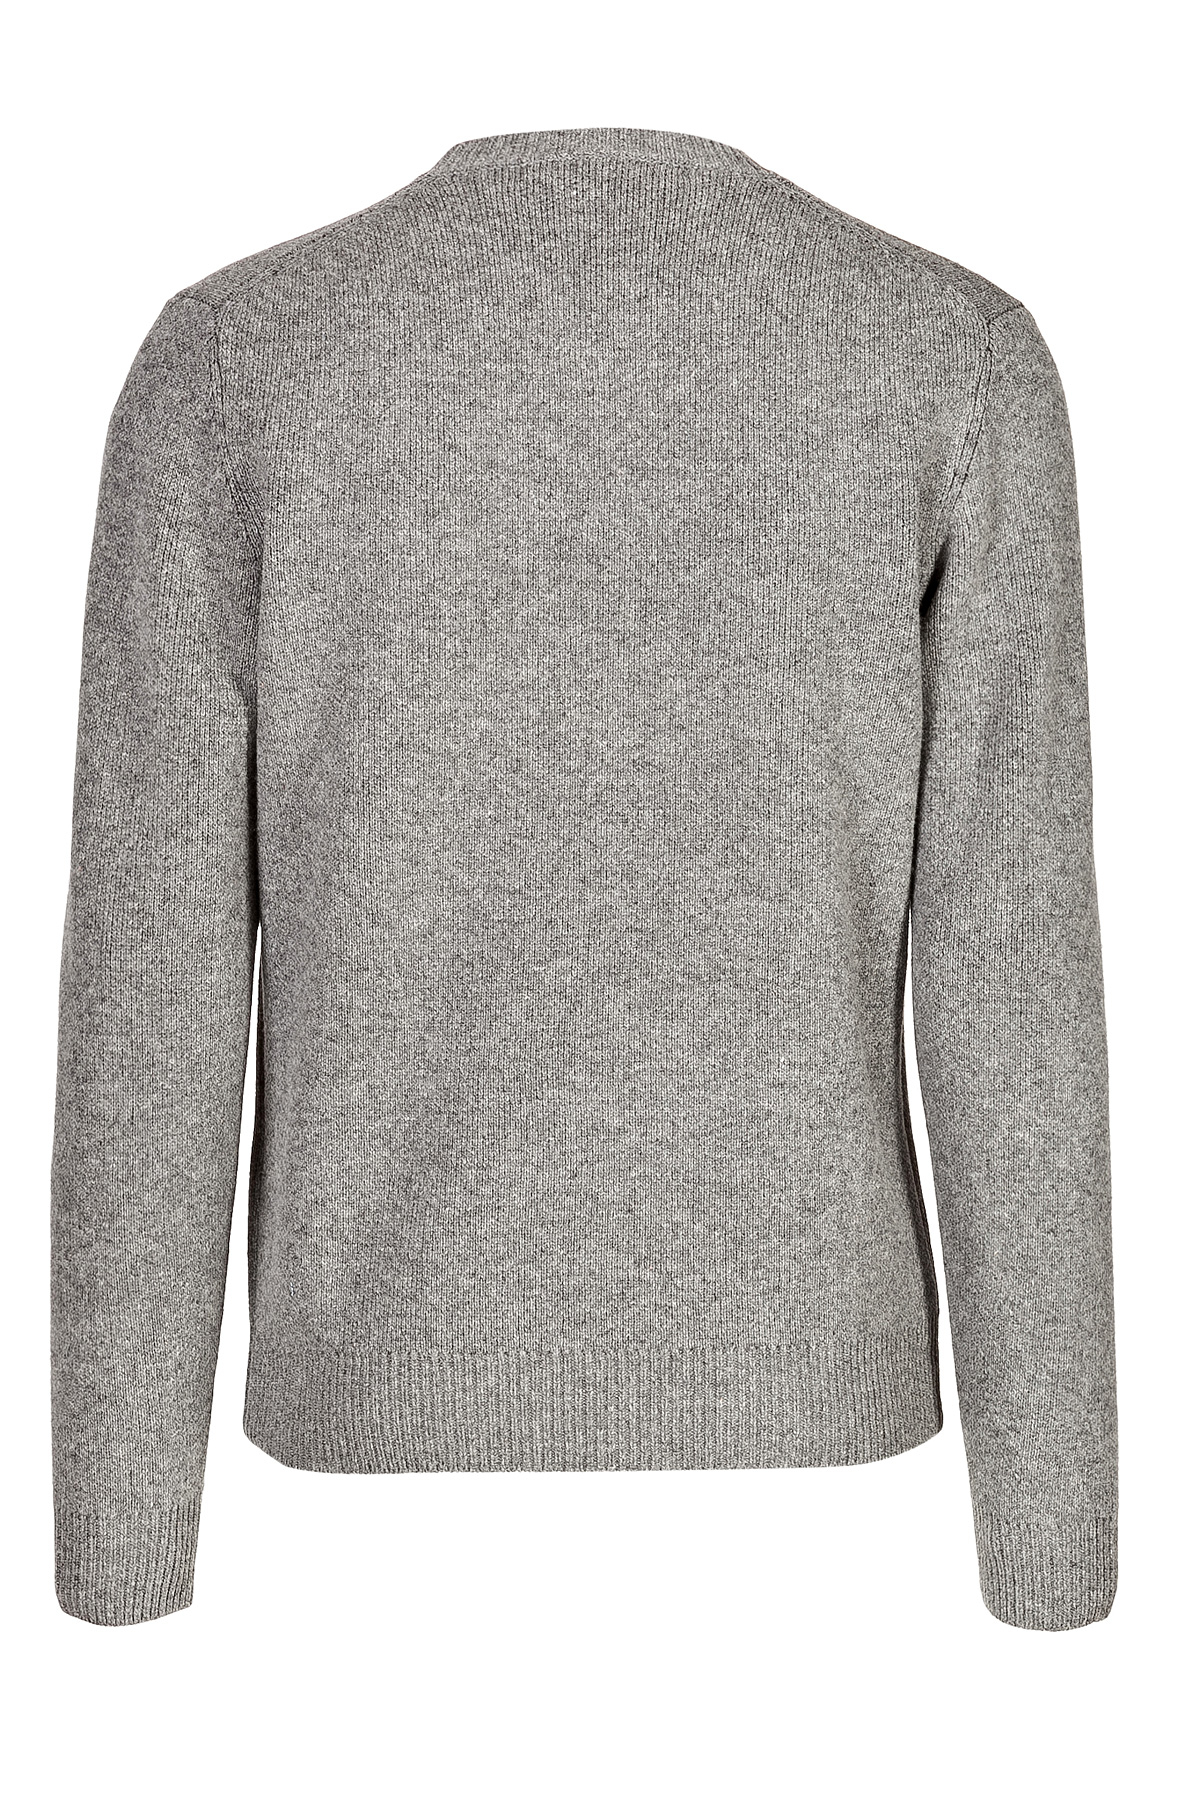 marc by marc jacobs merino wool ladybug pullover in gray for men lyst. Black Bedroom Furniture Sets. Home Design Ideas